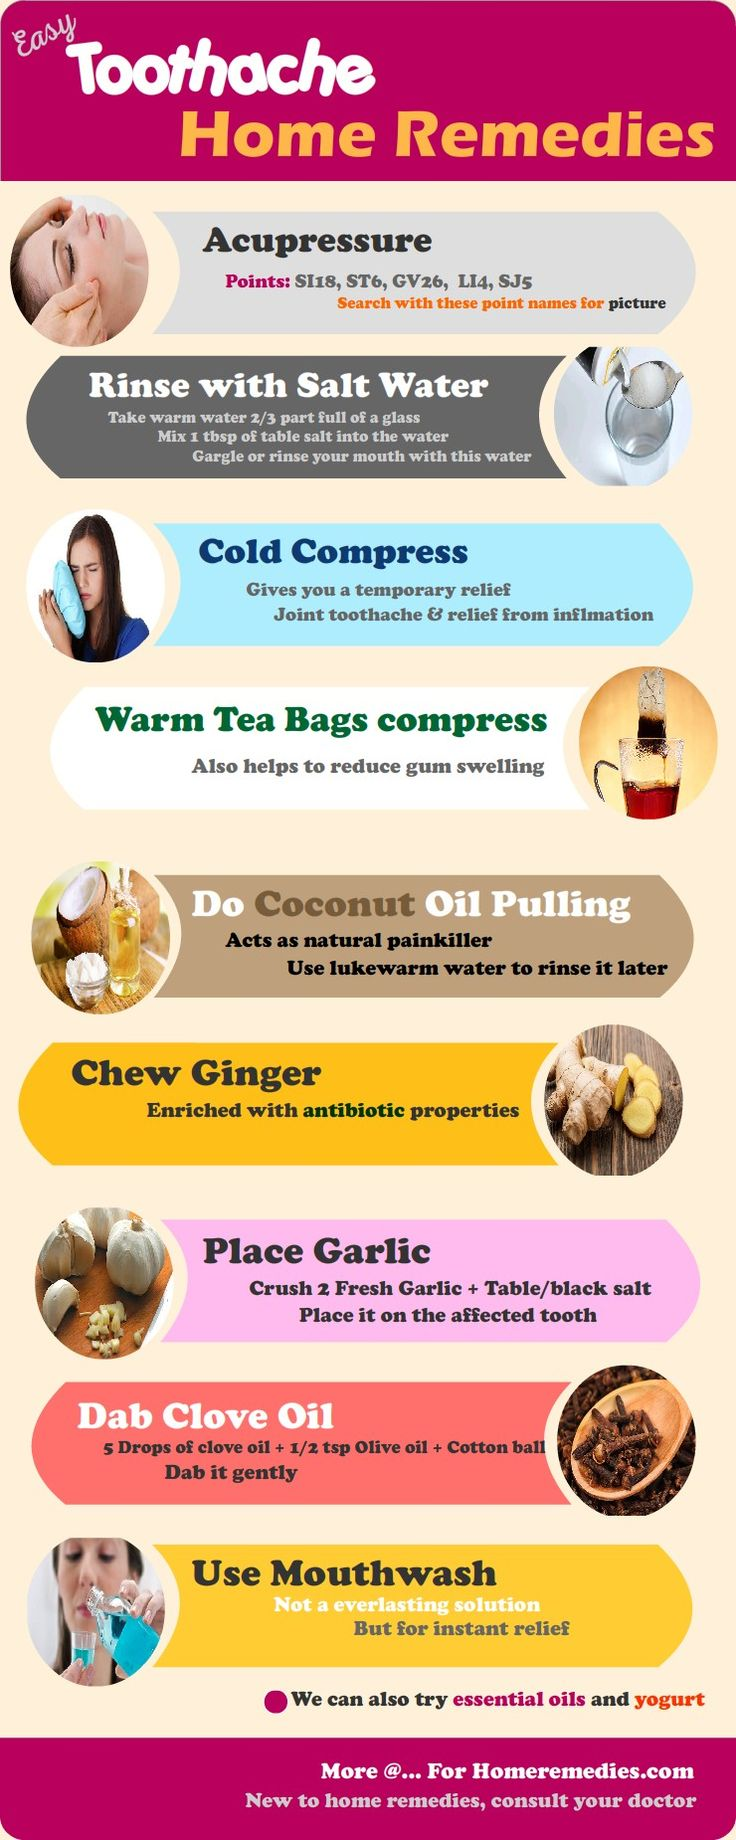 Home remedies to get rid of a toothache. Acupressure points, Saltwater ,Cold compress, clove oil for tooth pain, Tea bags, Coconut oil, Ginger benefits, Garlic, Mouthwash...